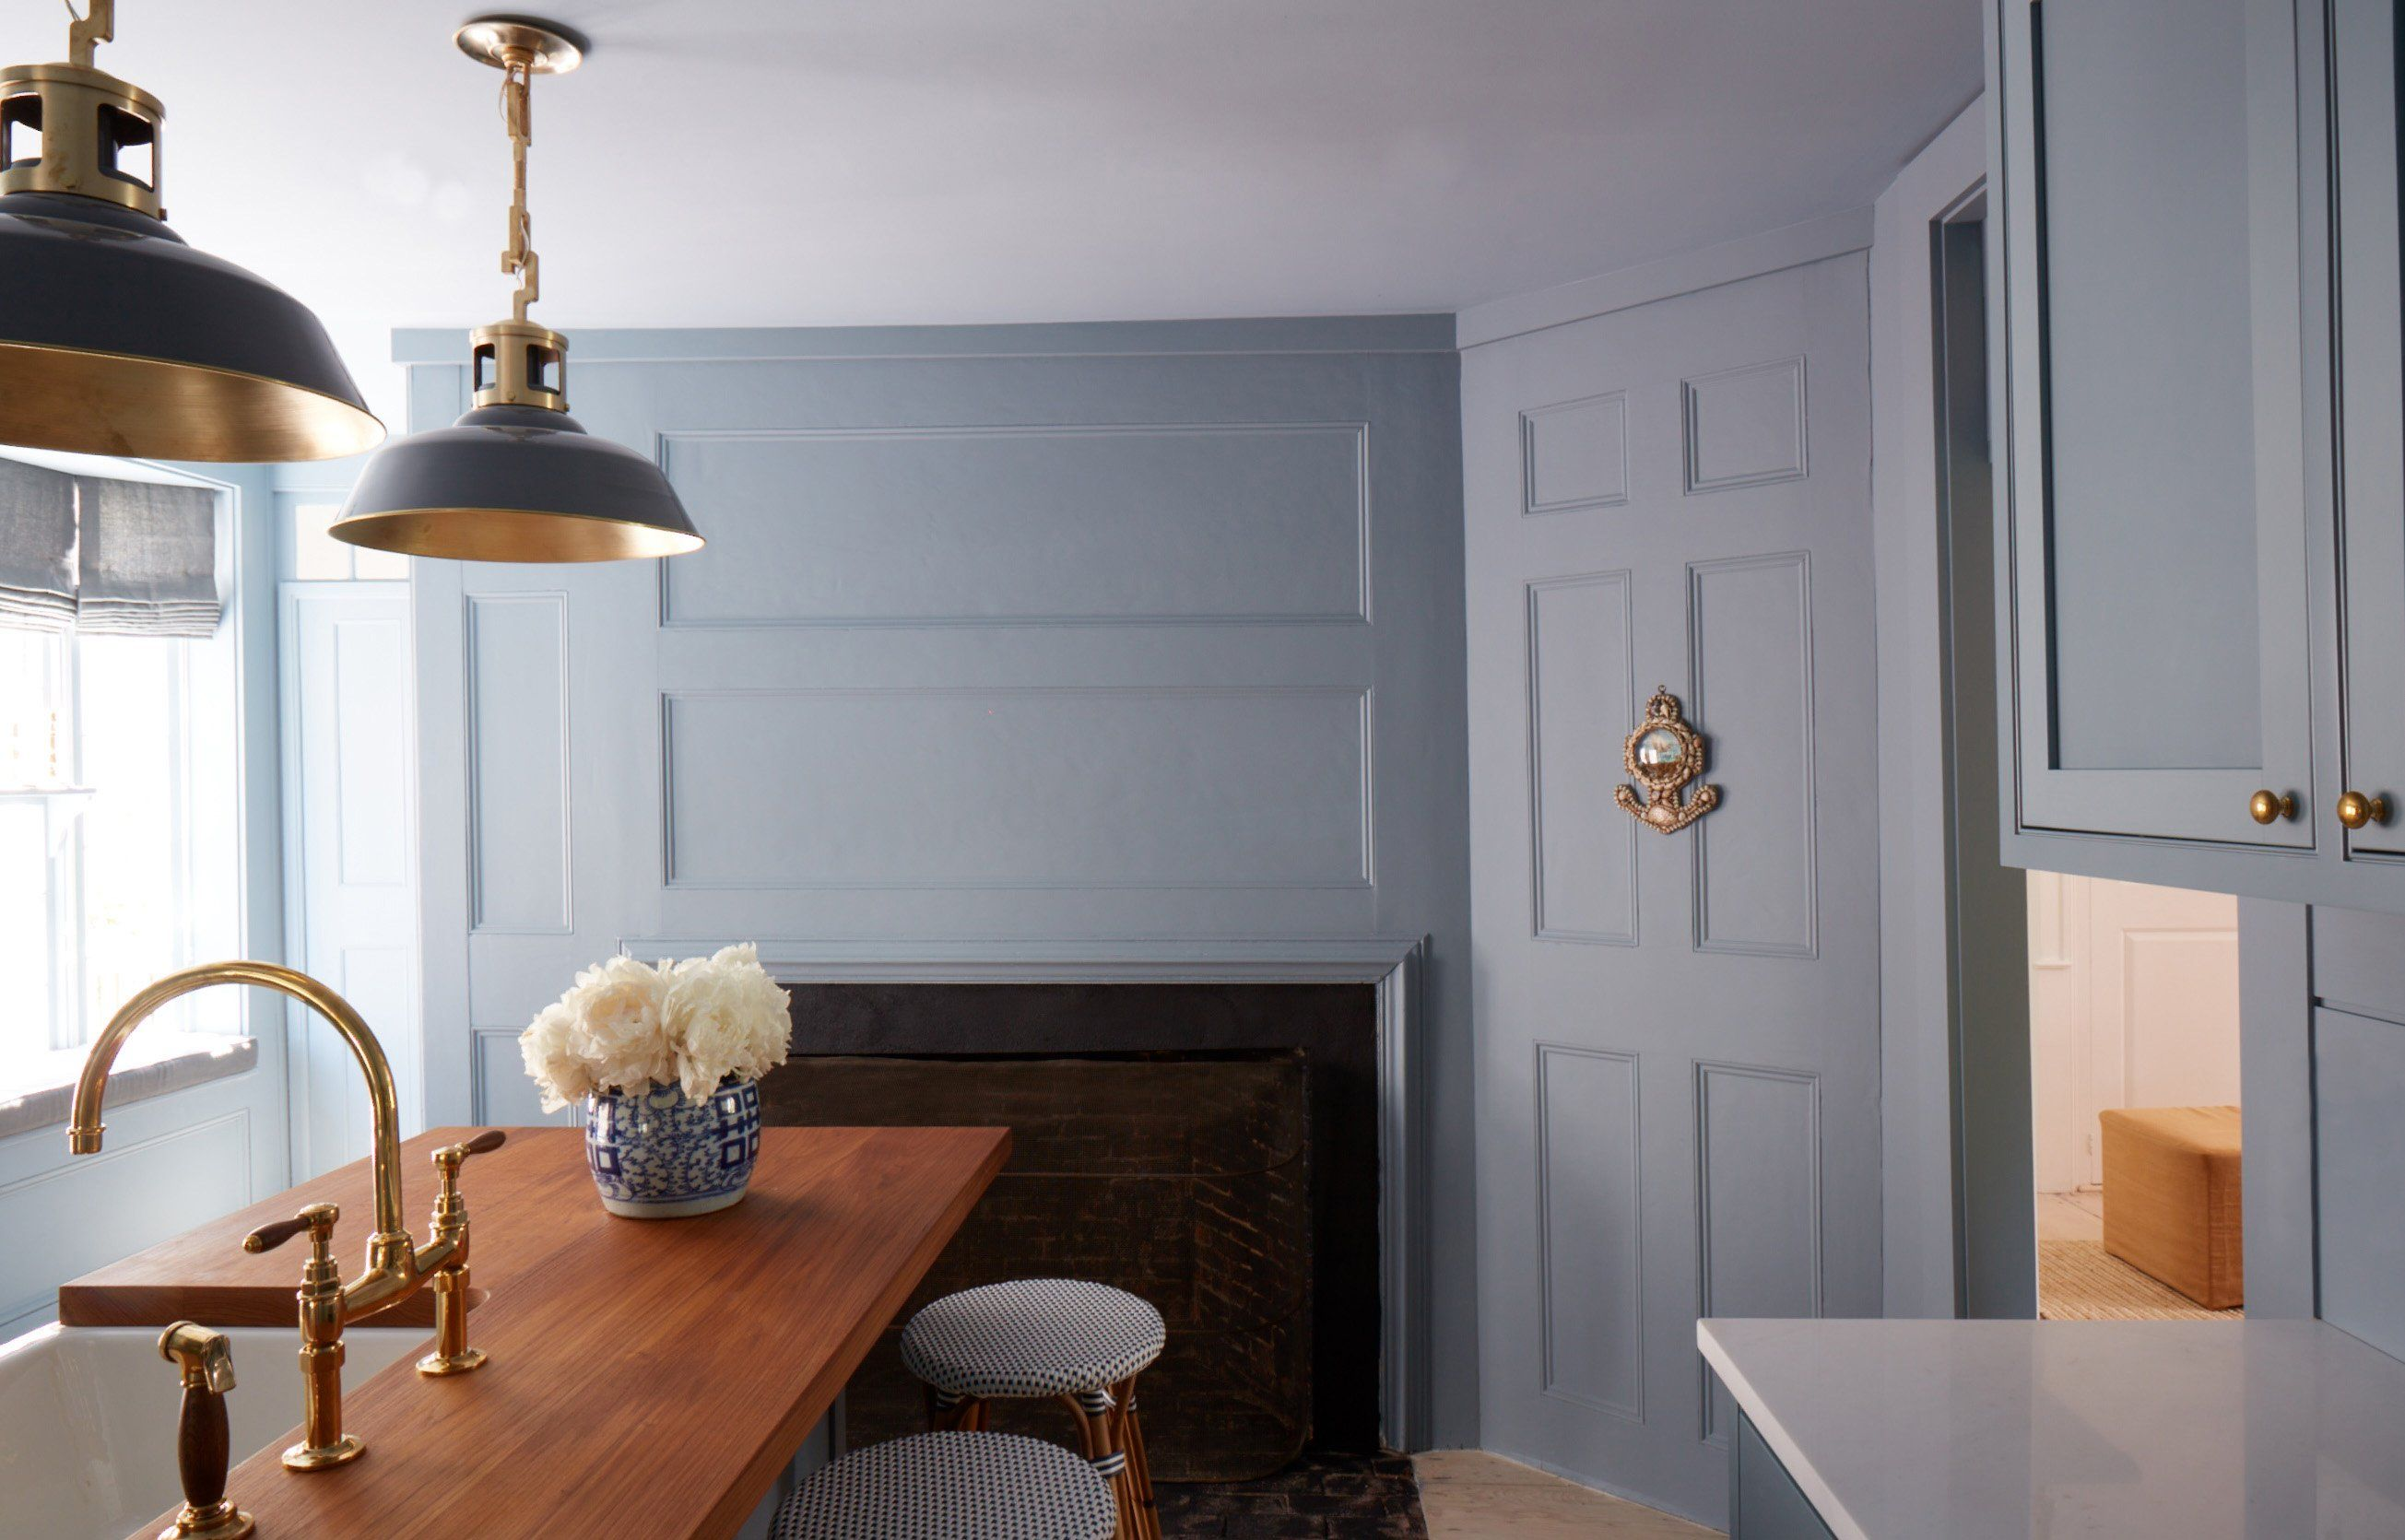 Kitchen in nantucket ma by ash nyc kitchens in pinterest